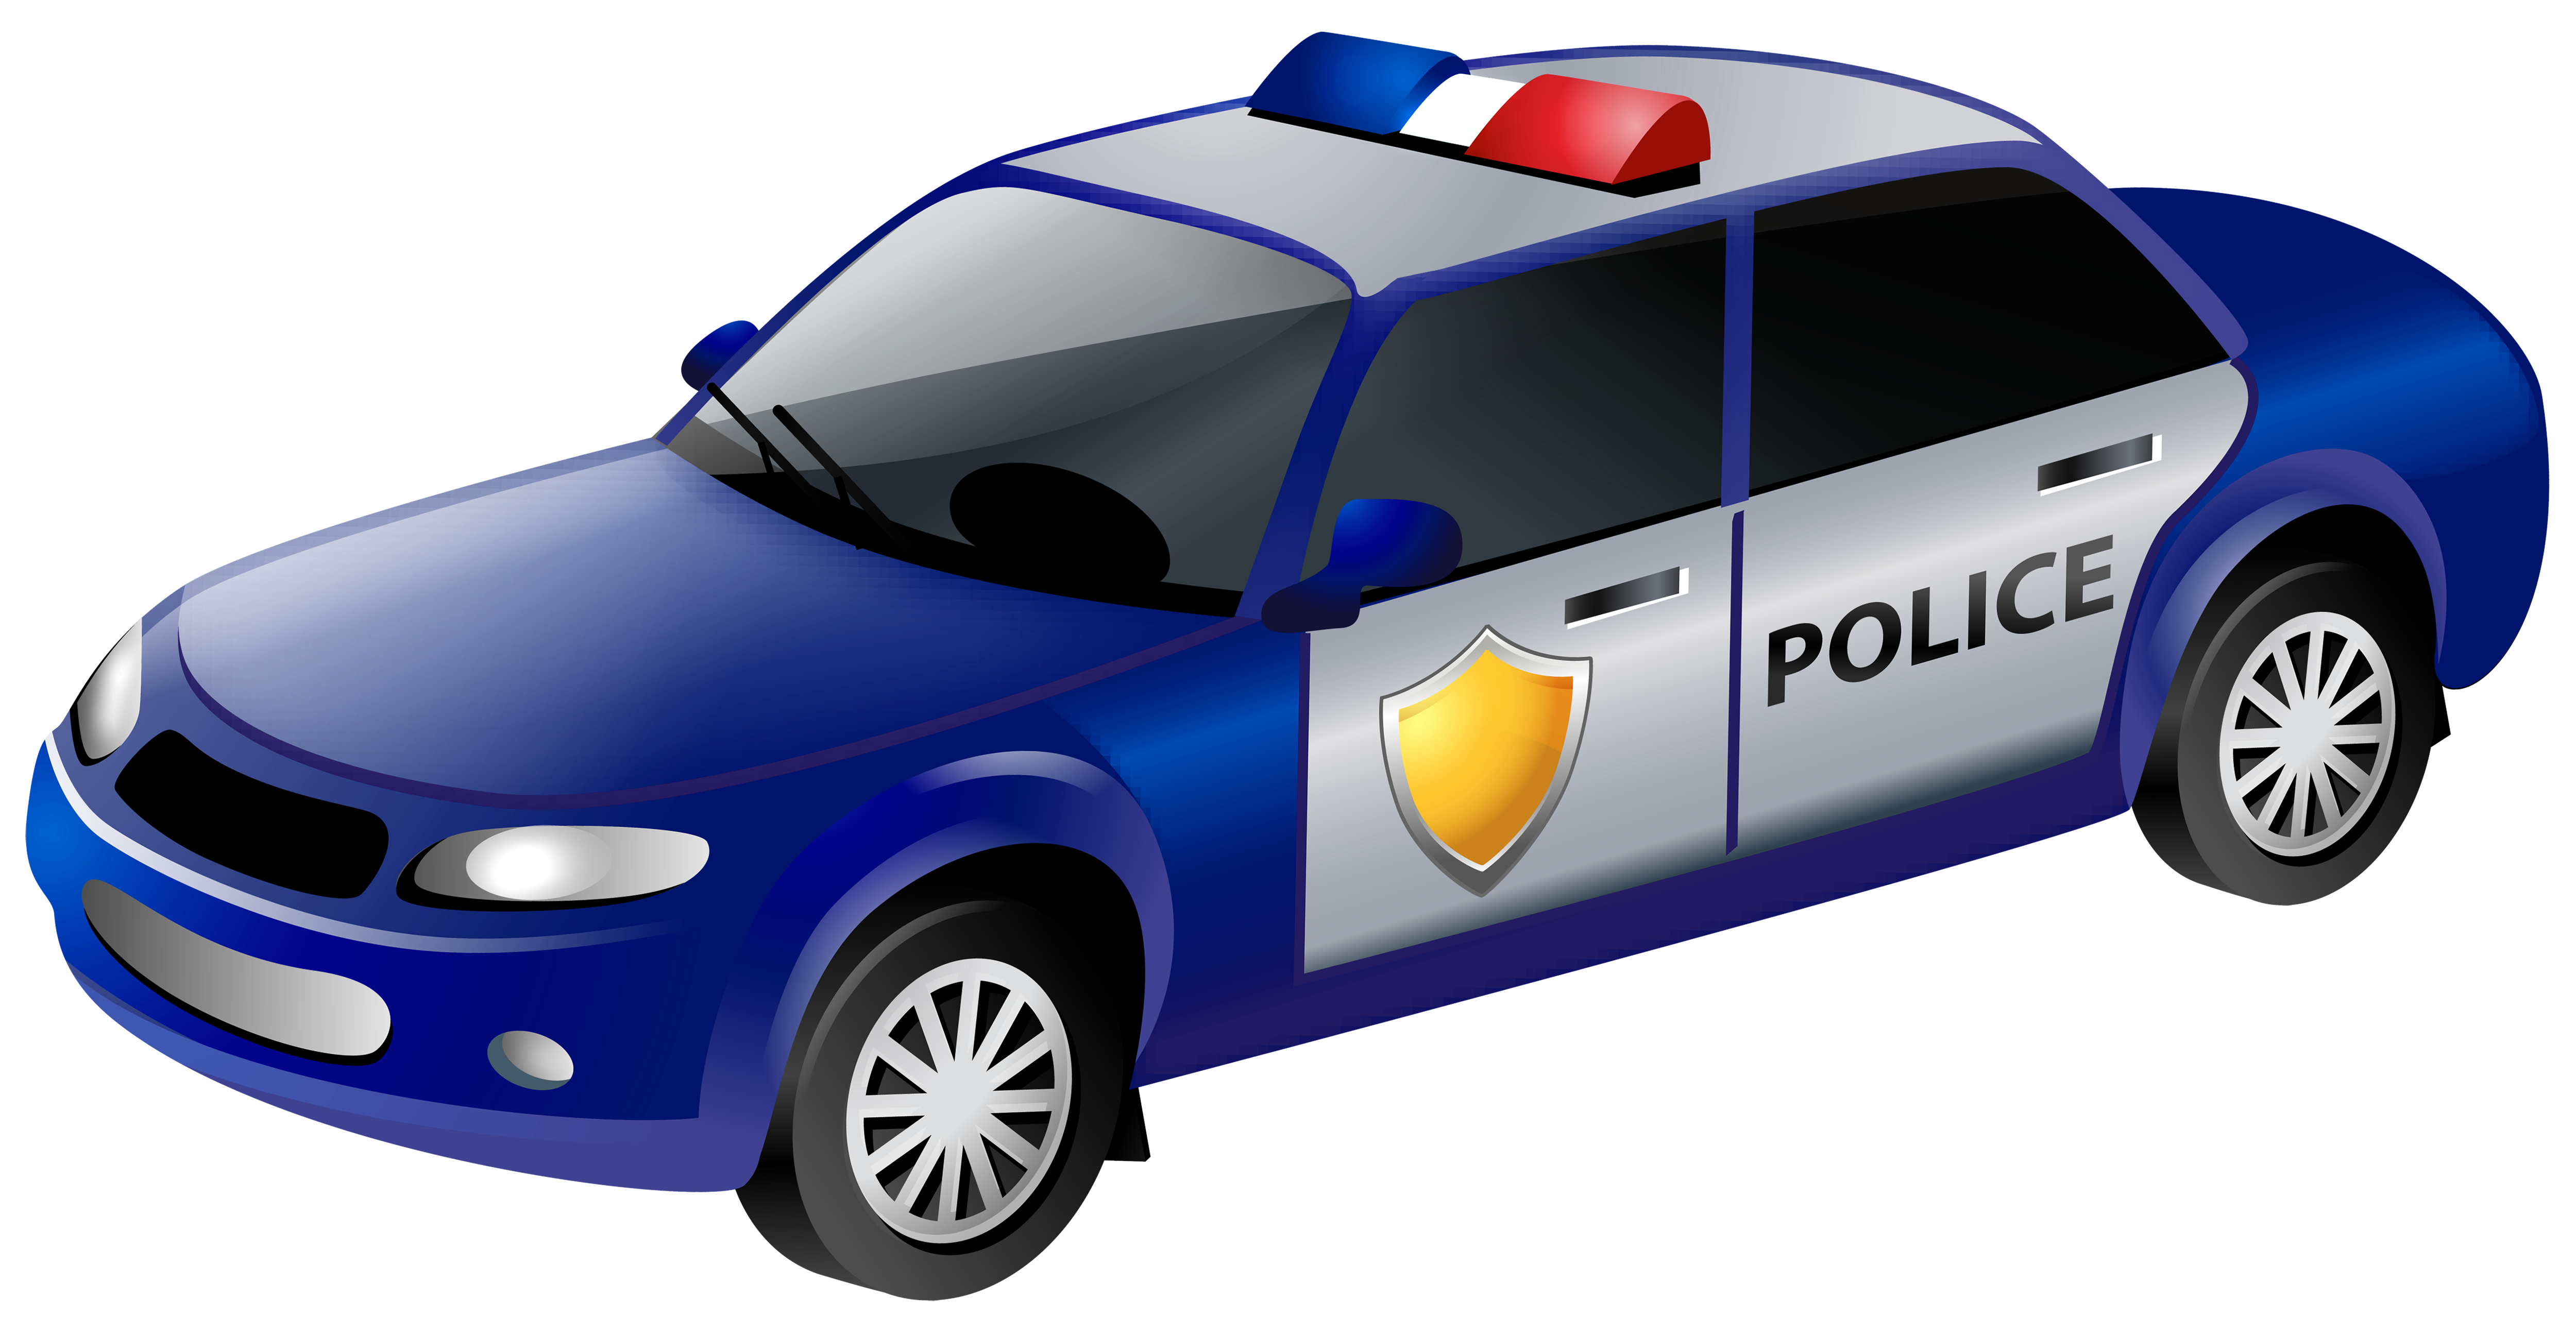 police car clipart transparentbackground cliparts #23906